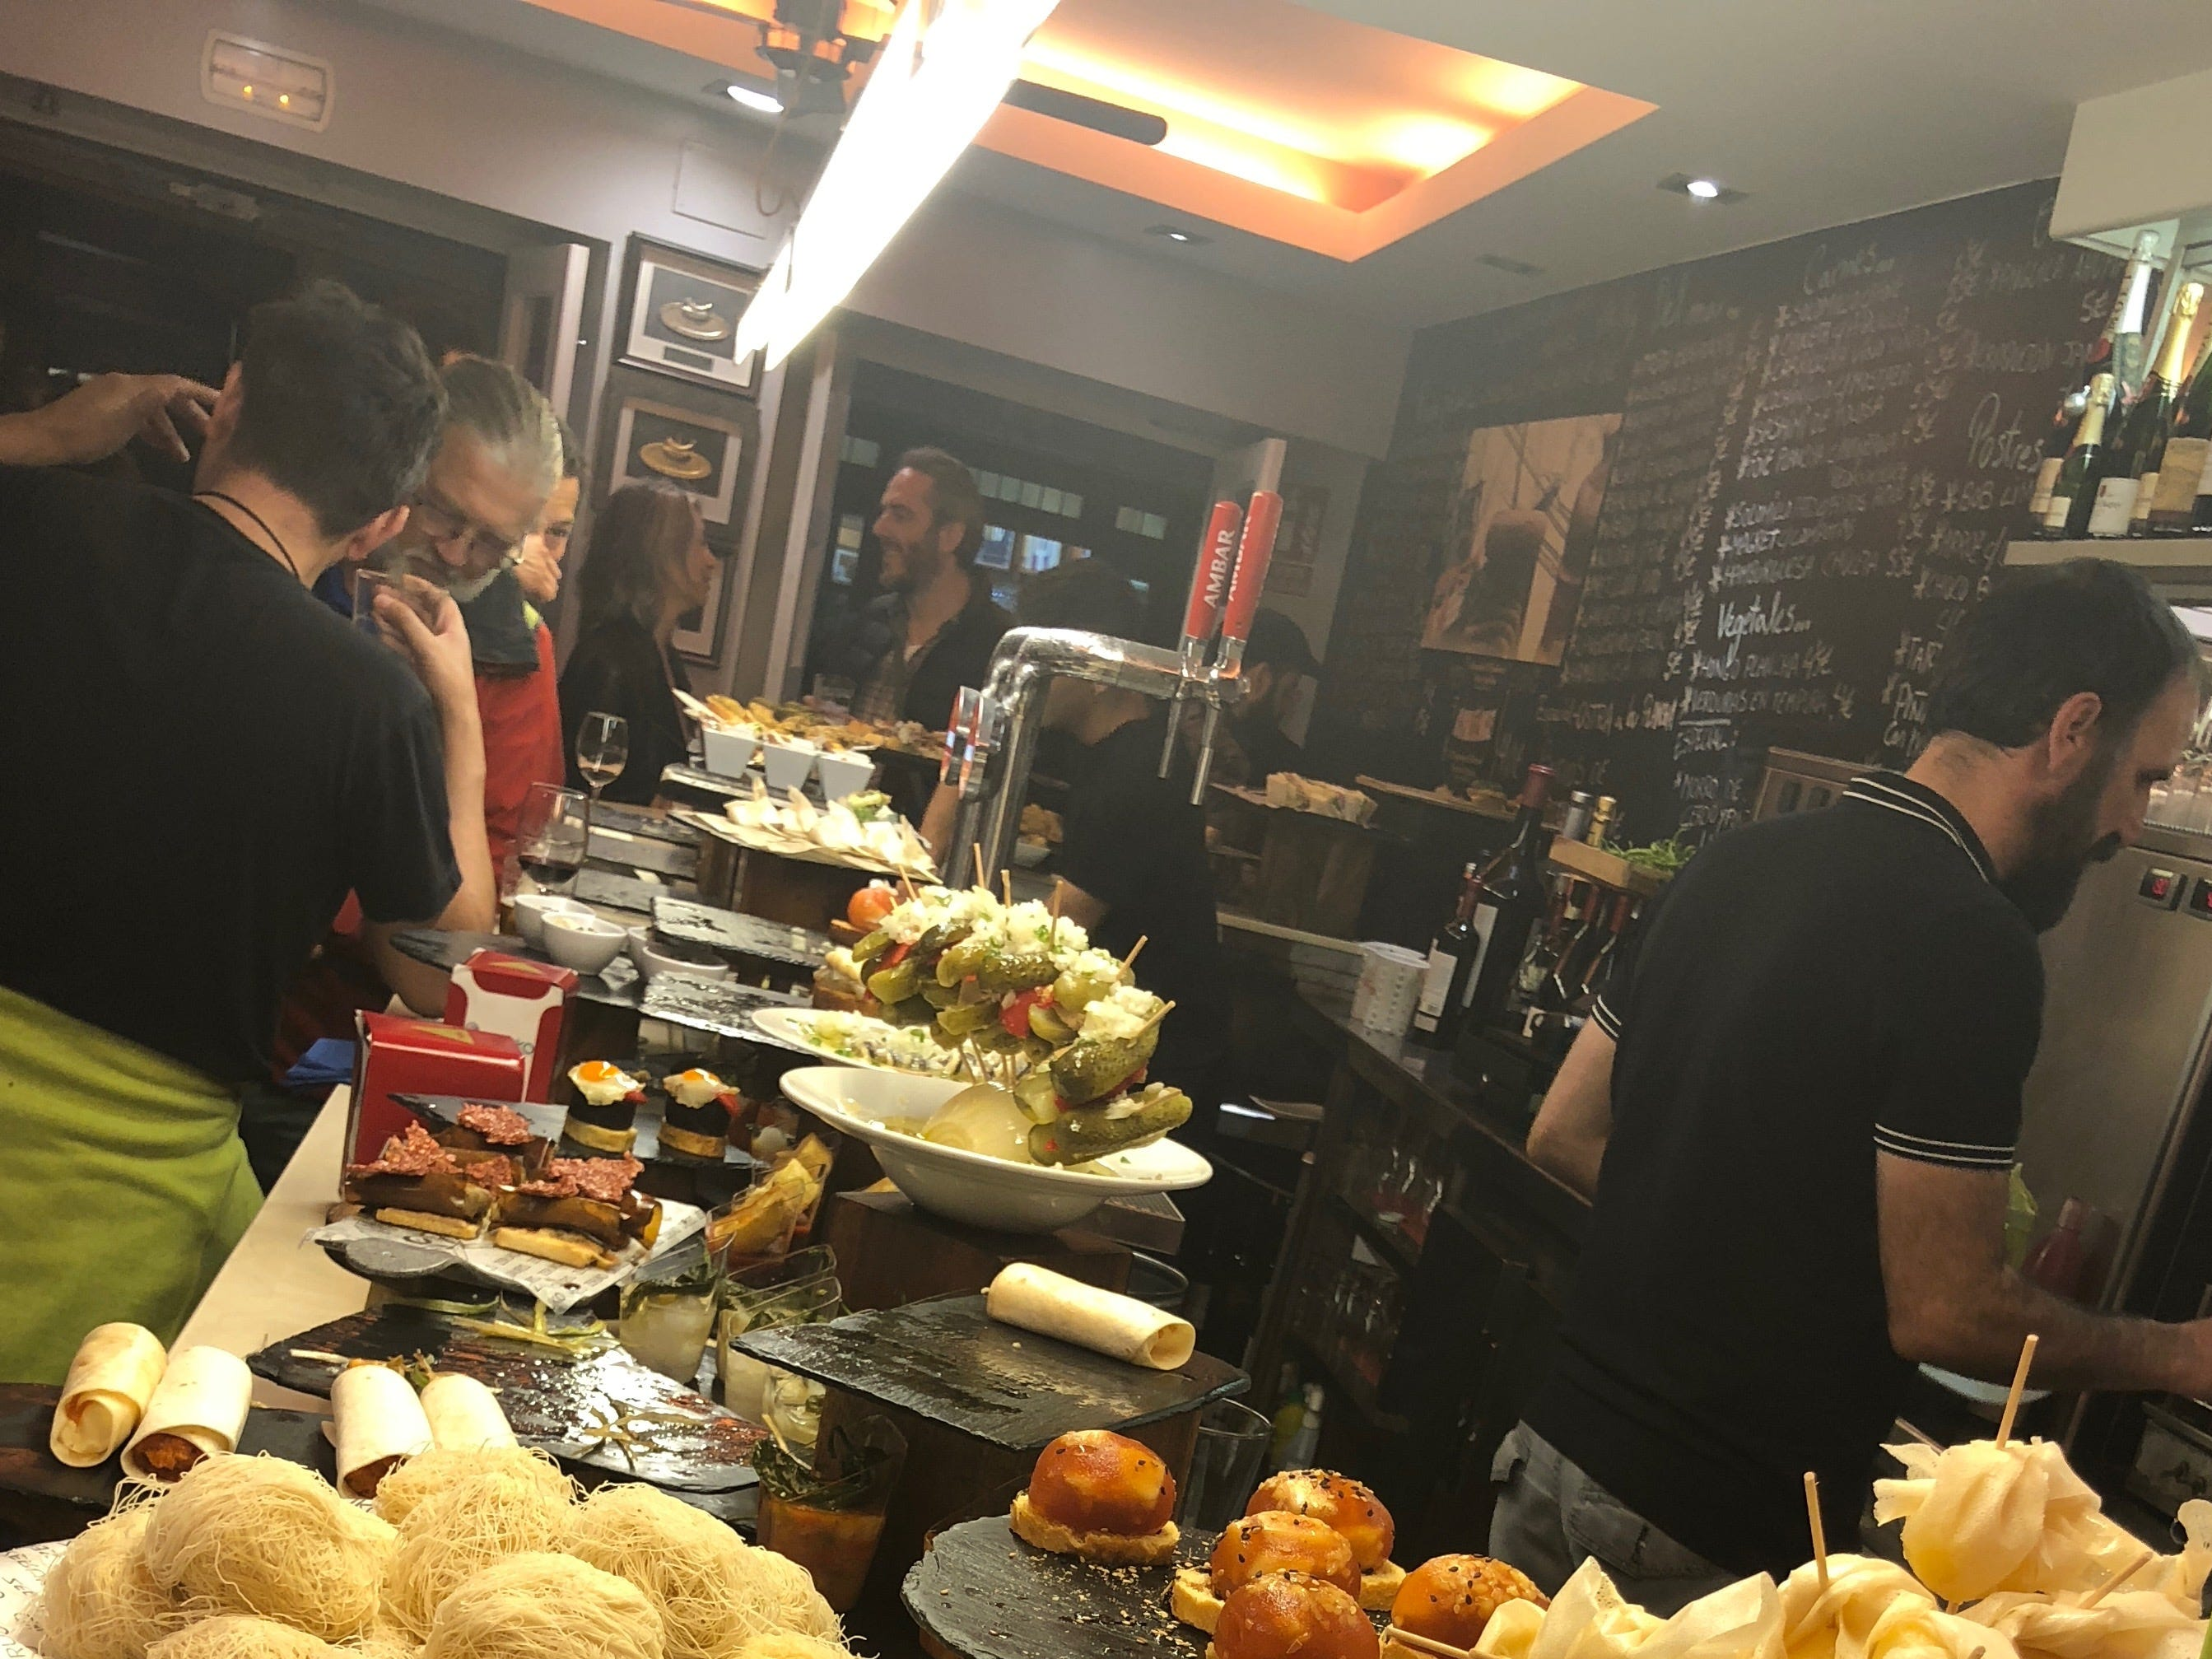 A collection of inventive pintxos at Bar Zeruko in the Old Town section of San Sebastian, Spain. A pintxos crawl is a nightly occurrence here for residents and tourists alike